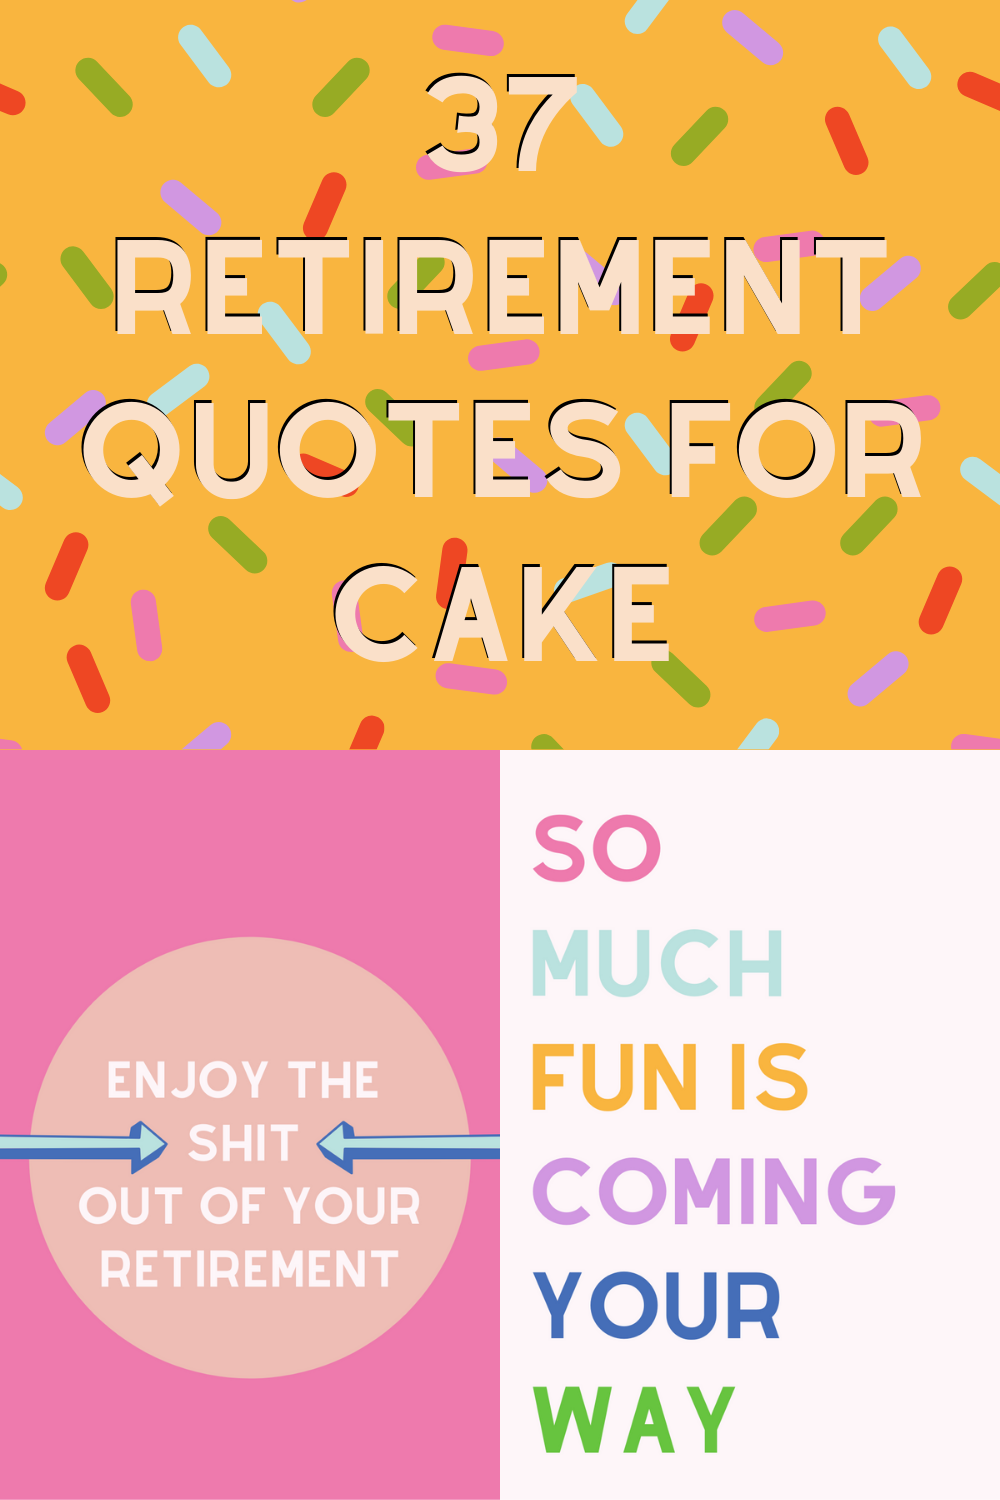 Retirement Quotes for Cake